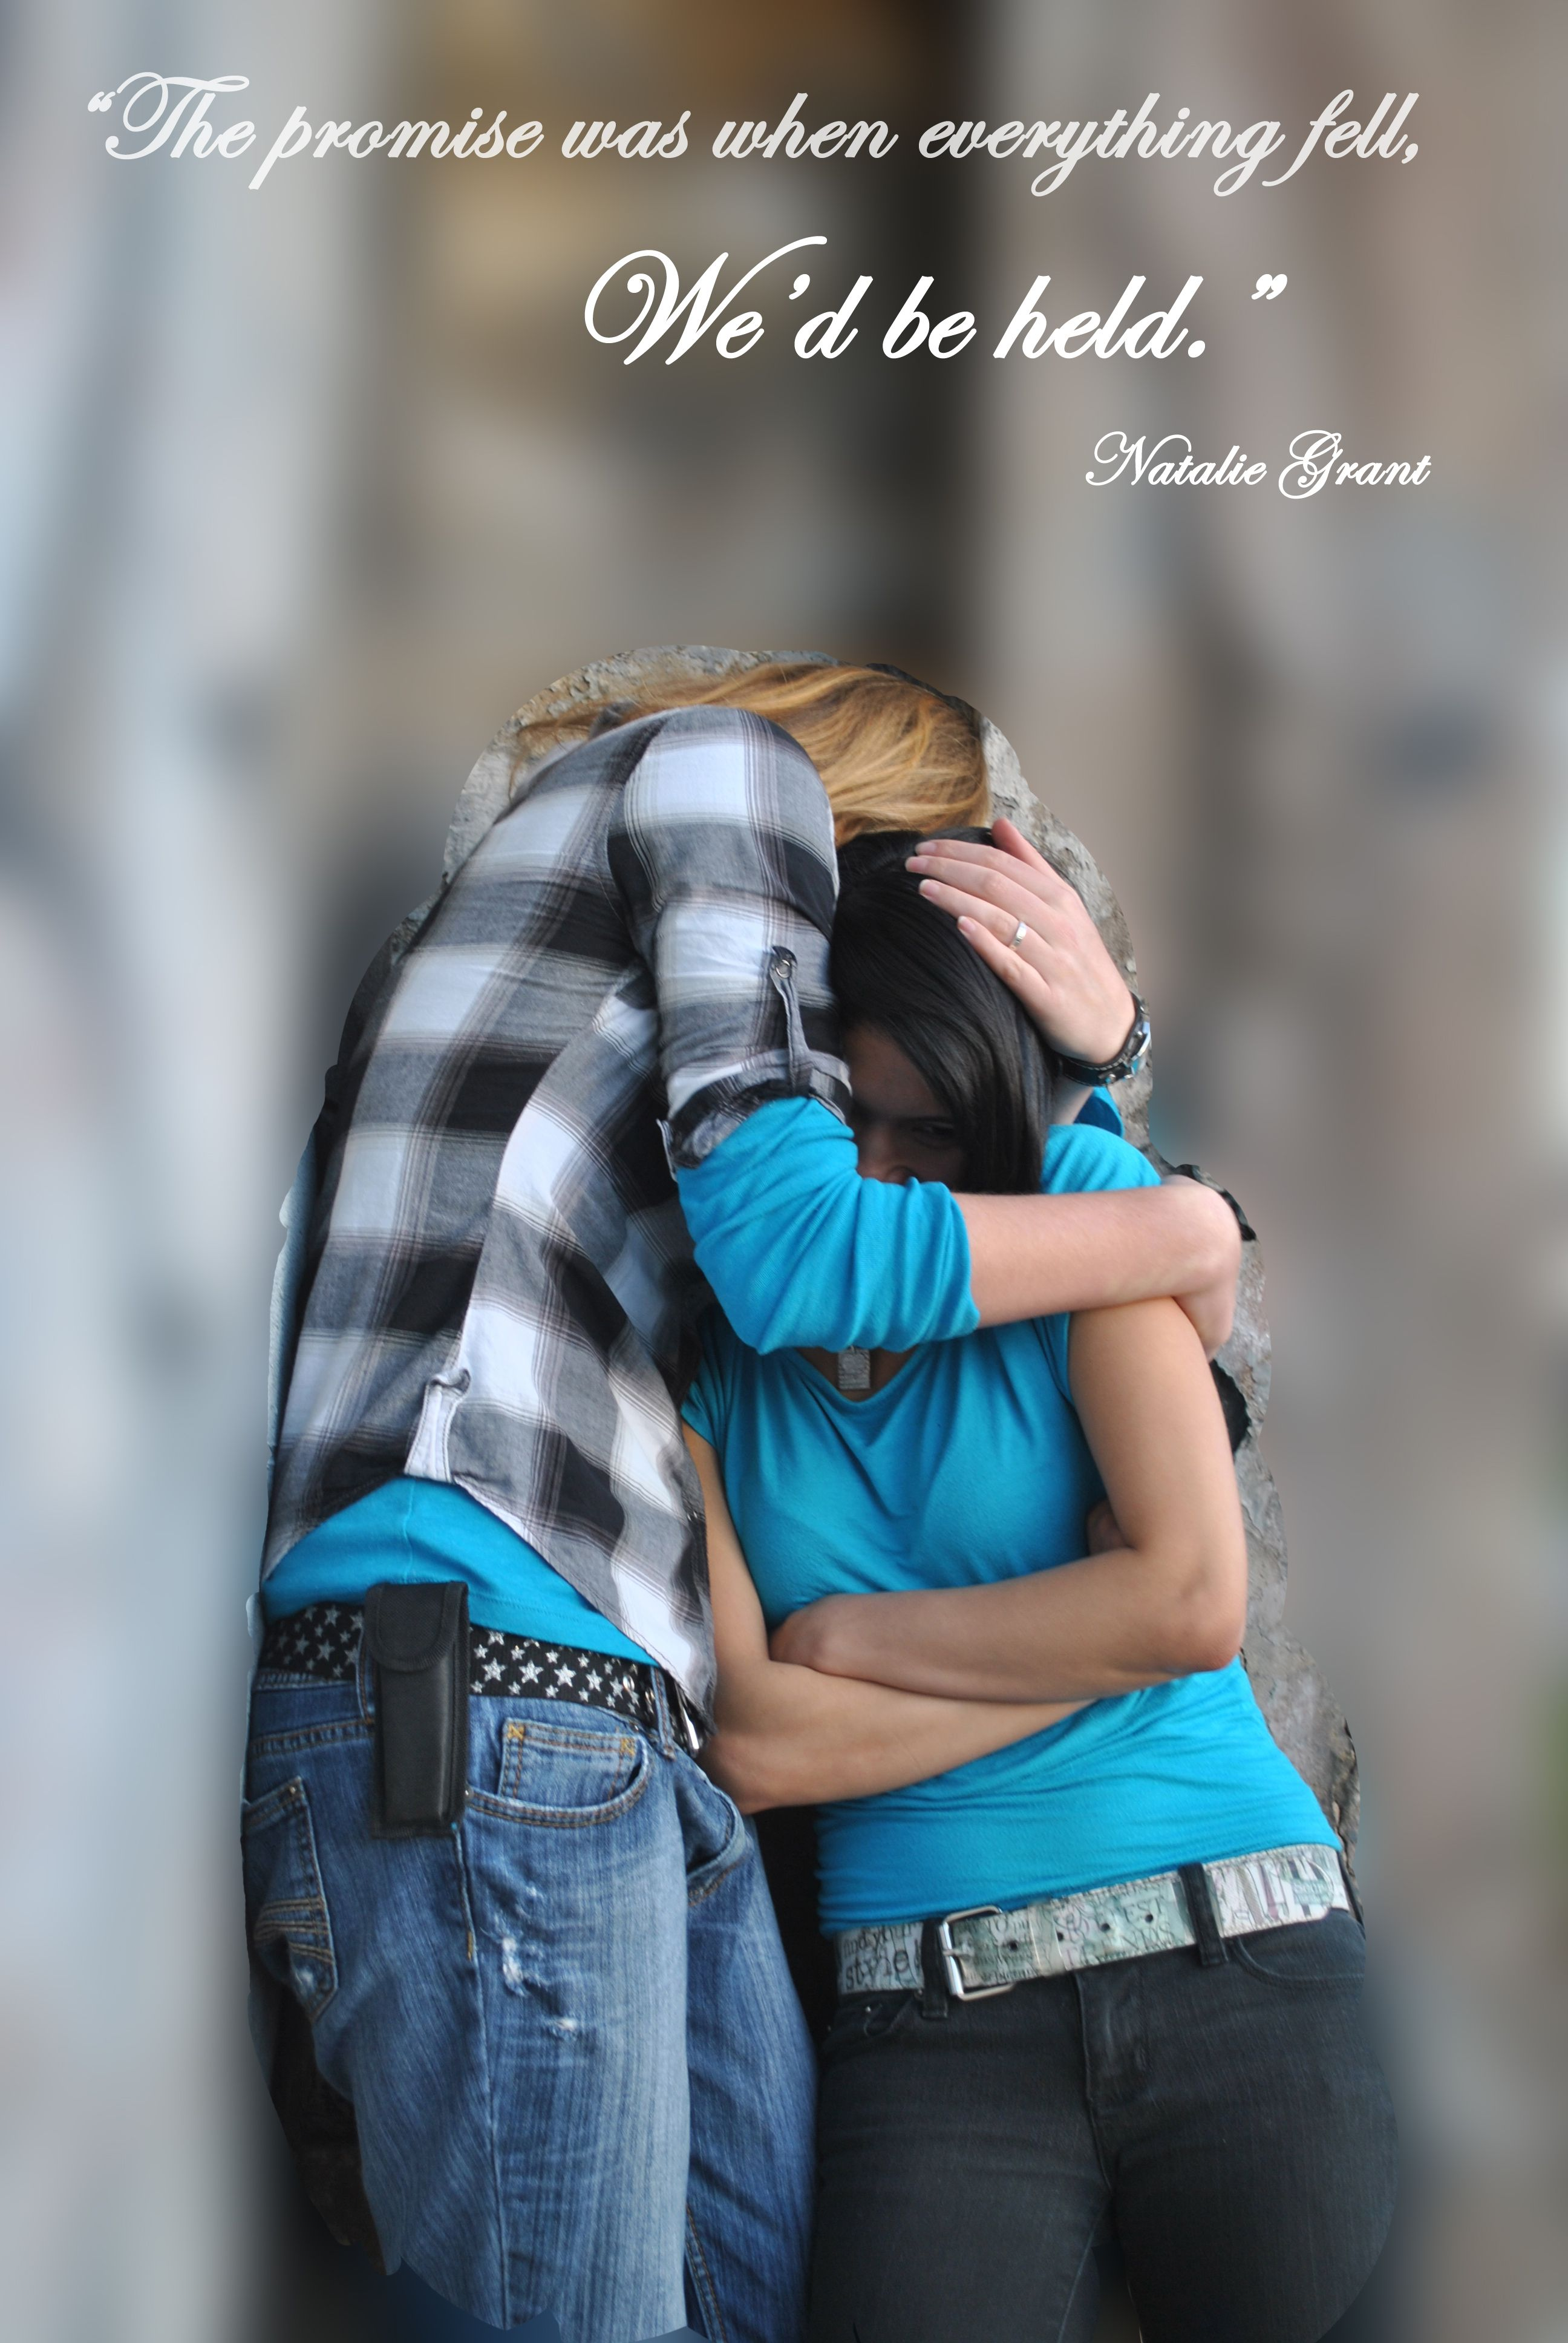 The Promise Was When Everything Fell Wed Be Held Natalie Grant